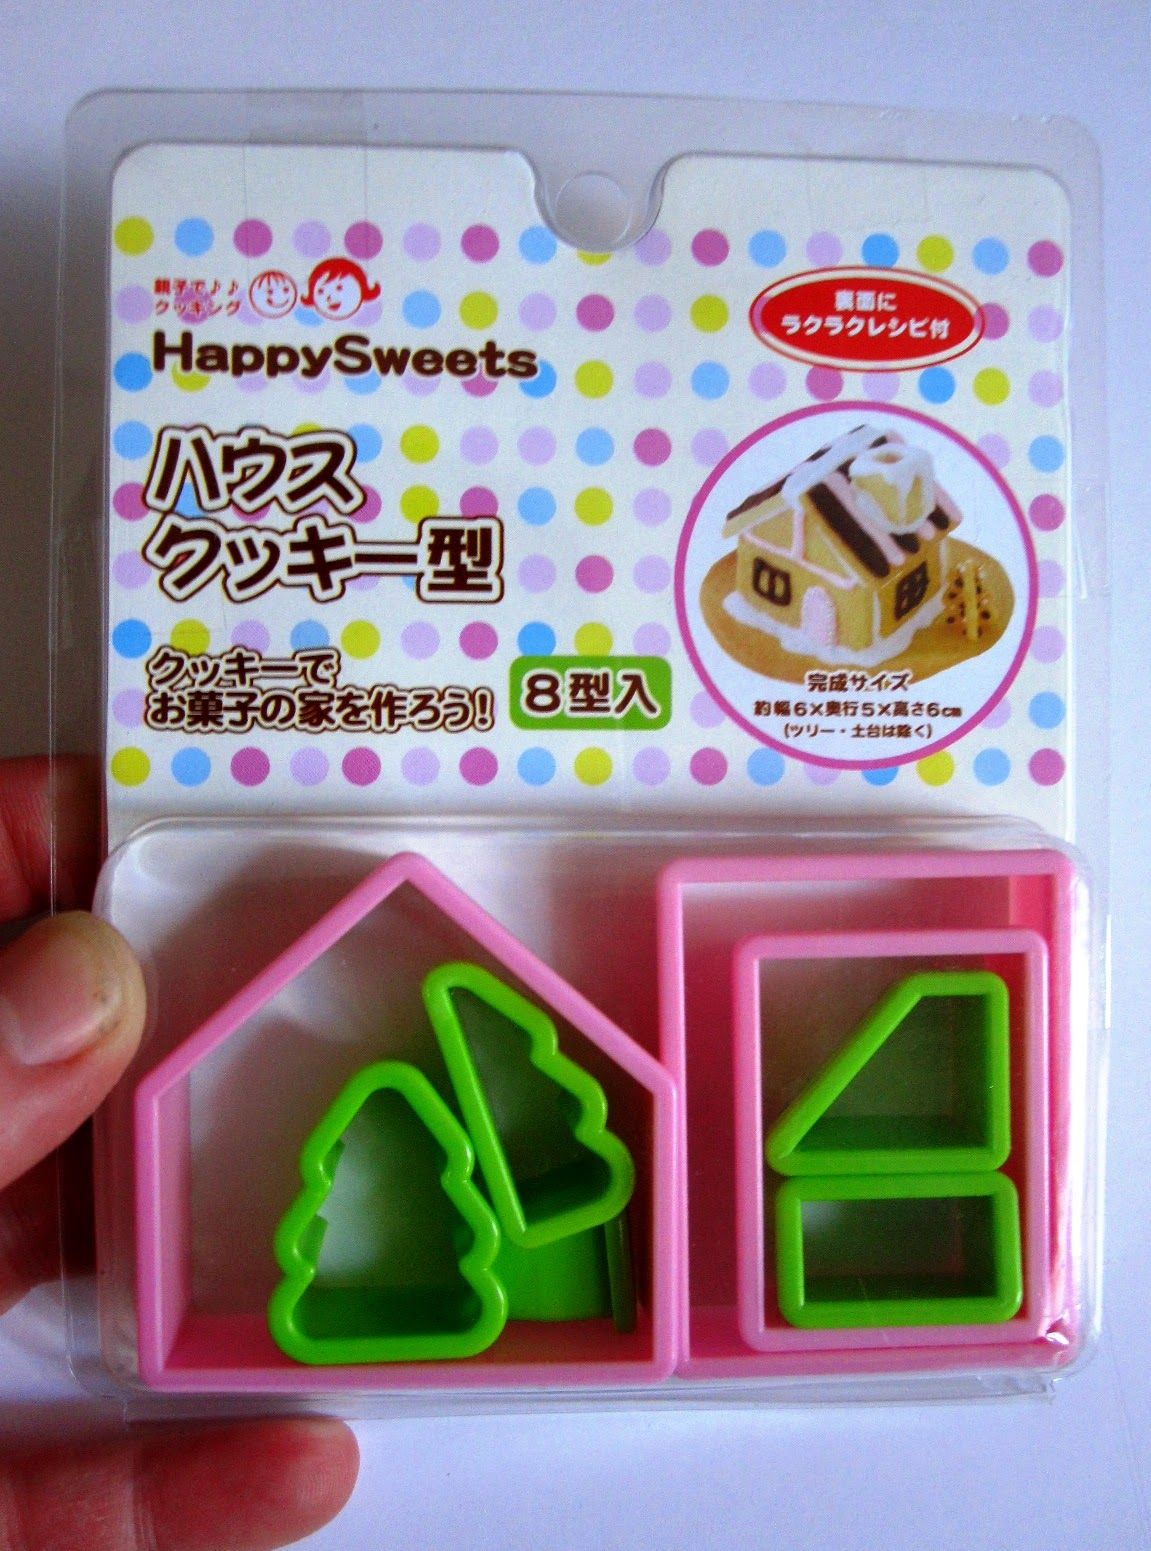 HappySweets miniature gingerbread house cutters.